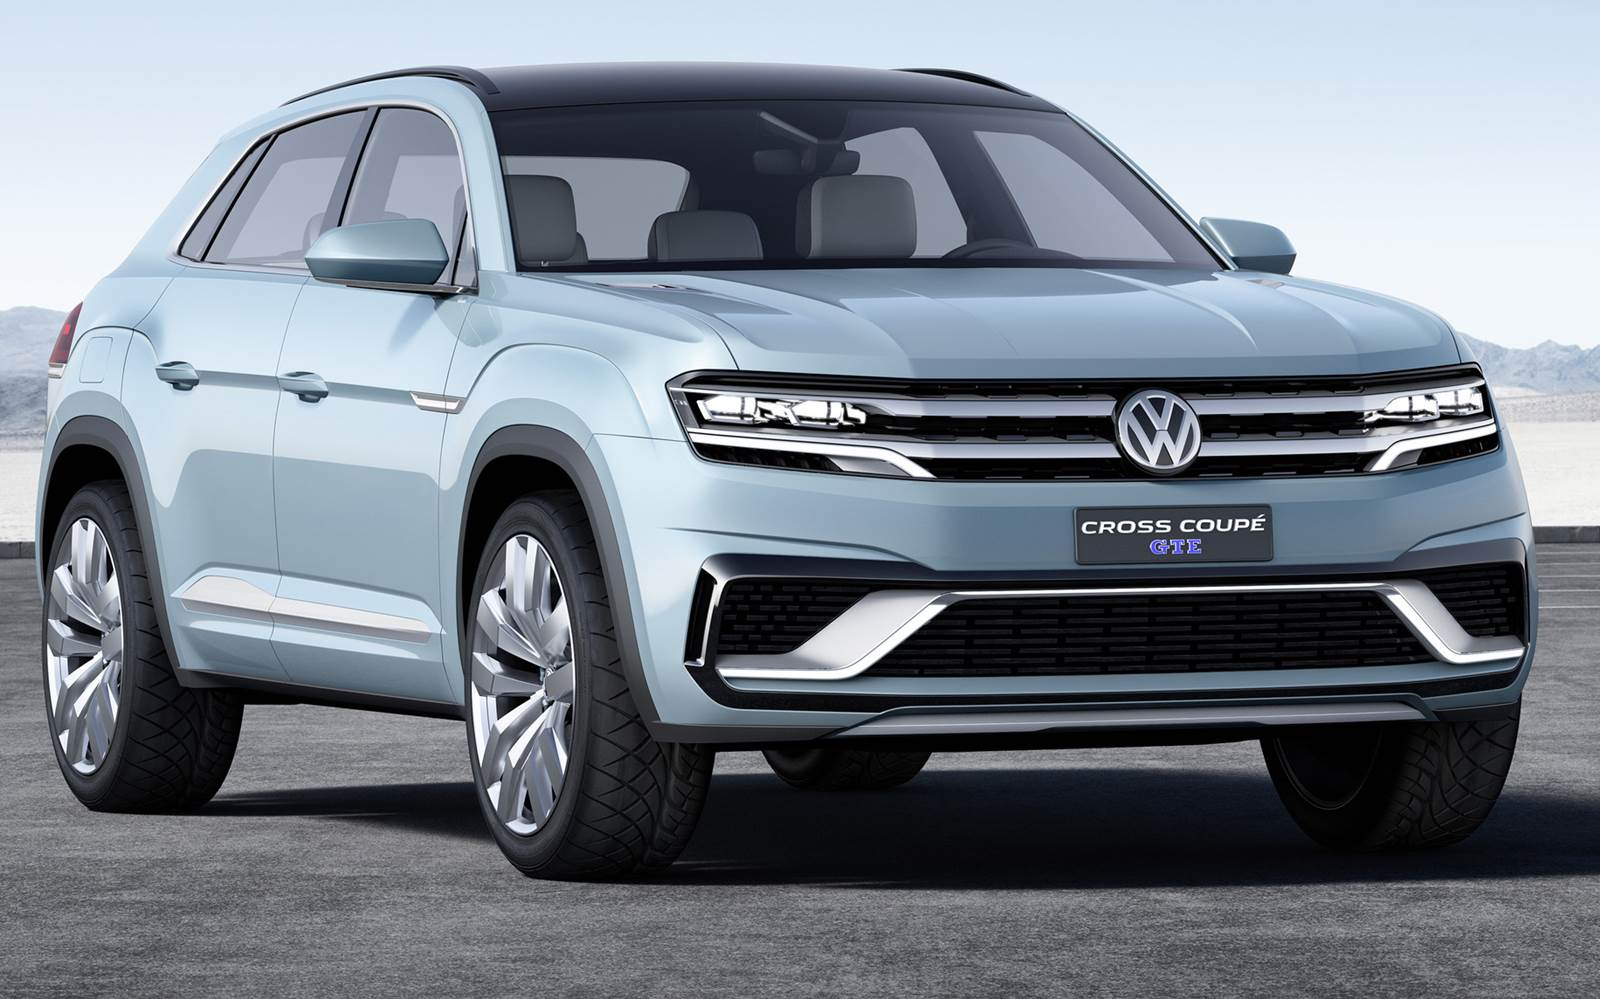 Volkswagen Cross Coup 233 Gte Antecipa Linhas Do Golf Suv